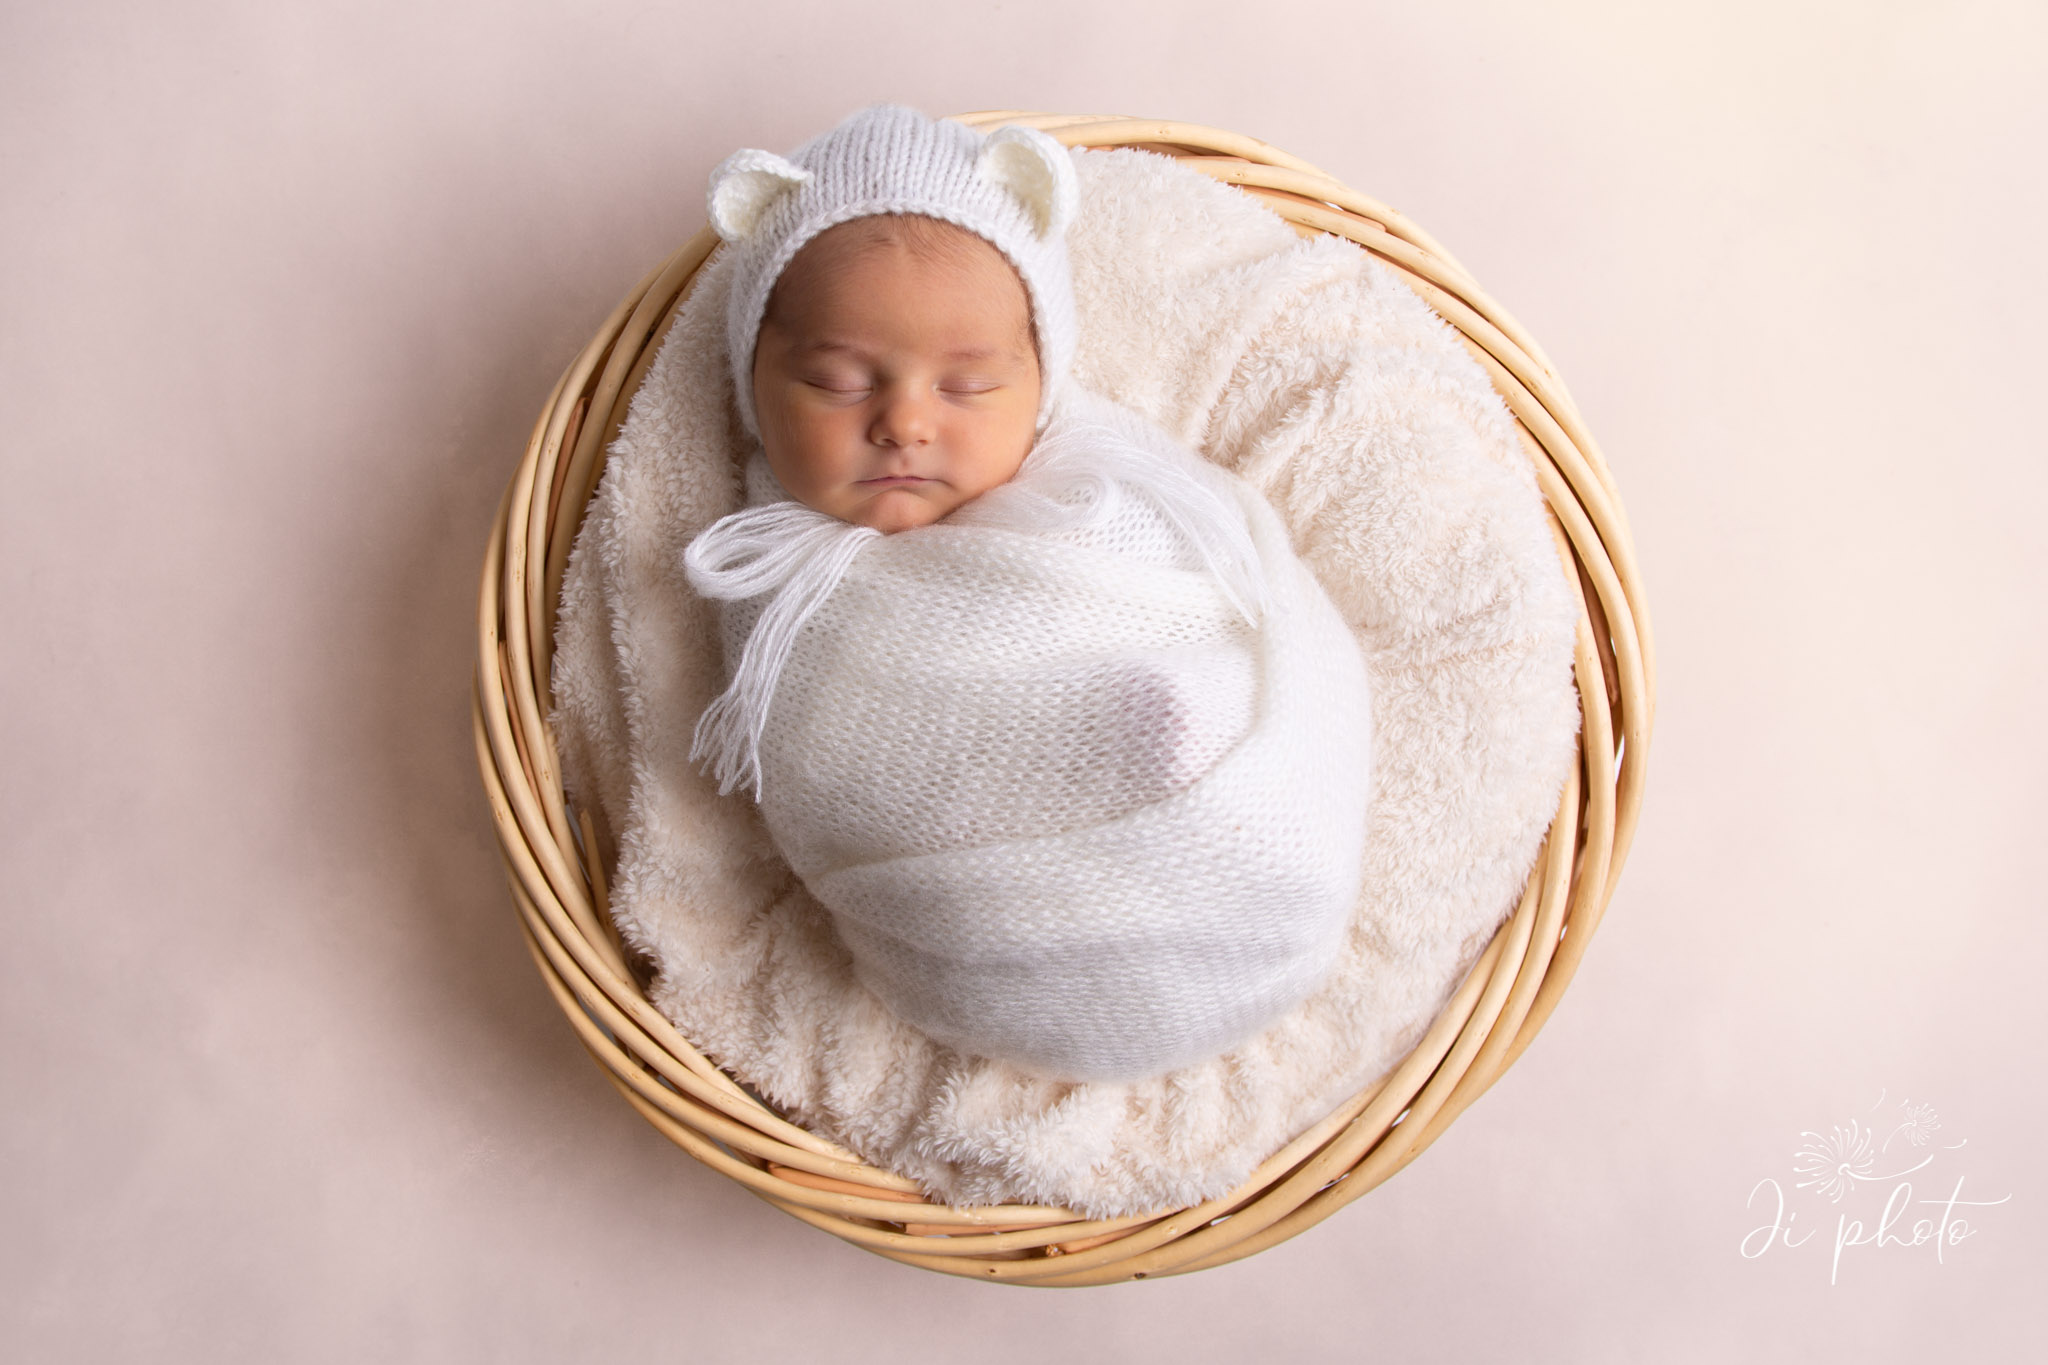 photographe-ji-photo-lausanne-newborn-bebe-nouveau-ne-006